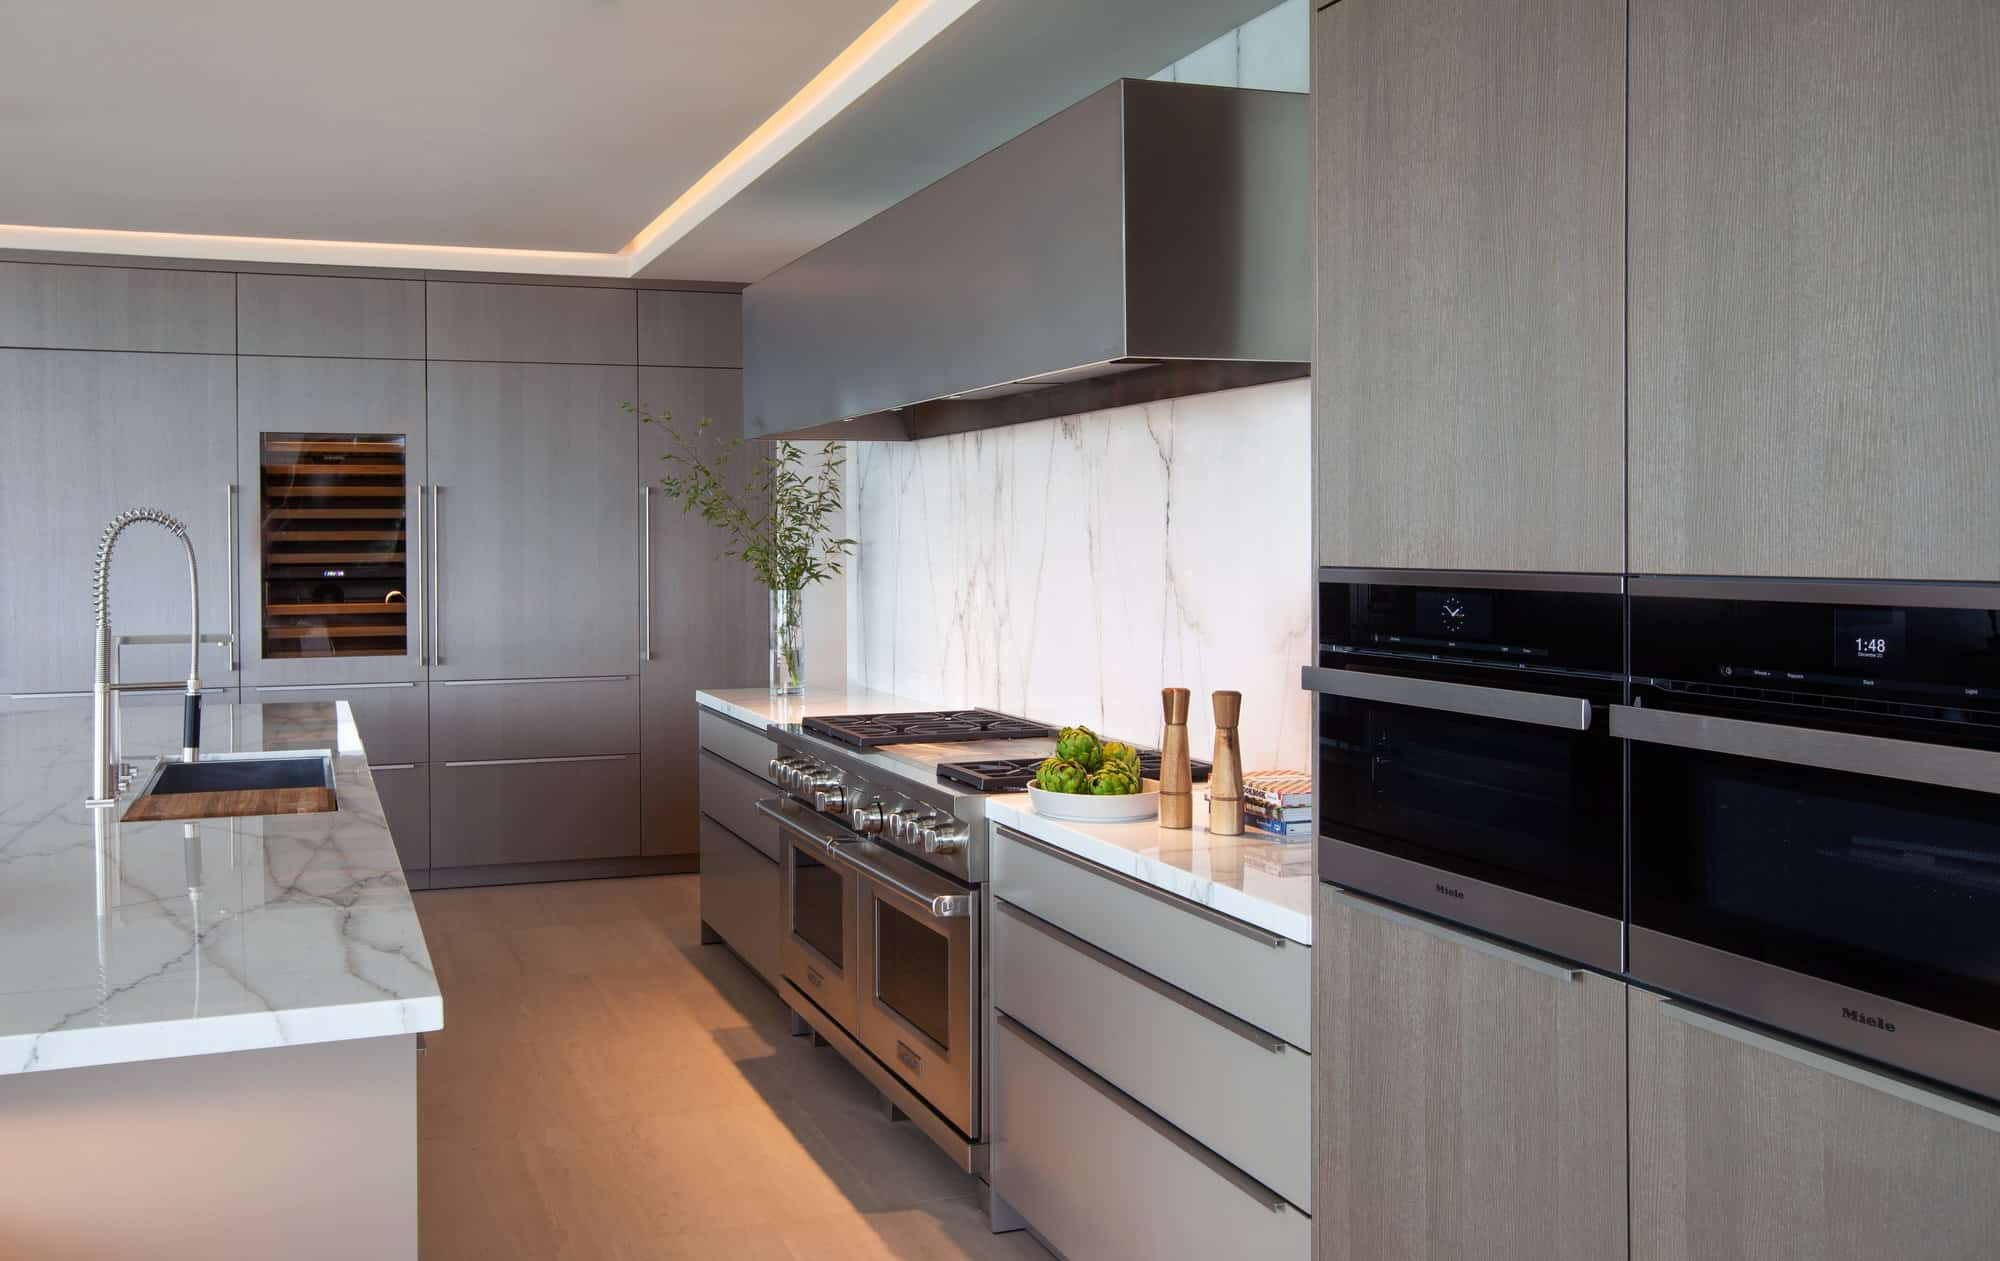 high-end appliances and natural finishes in a corona del mar home's luxury contemporary kitchen